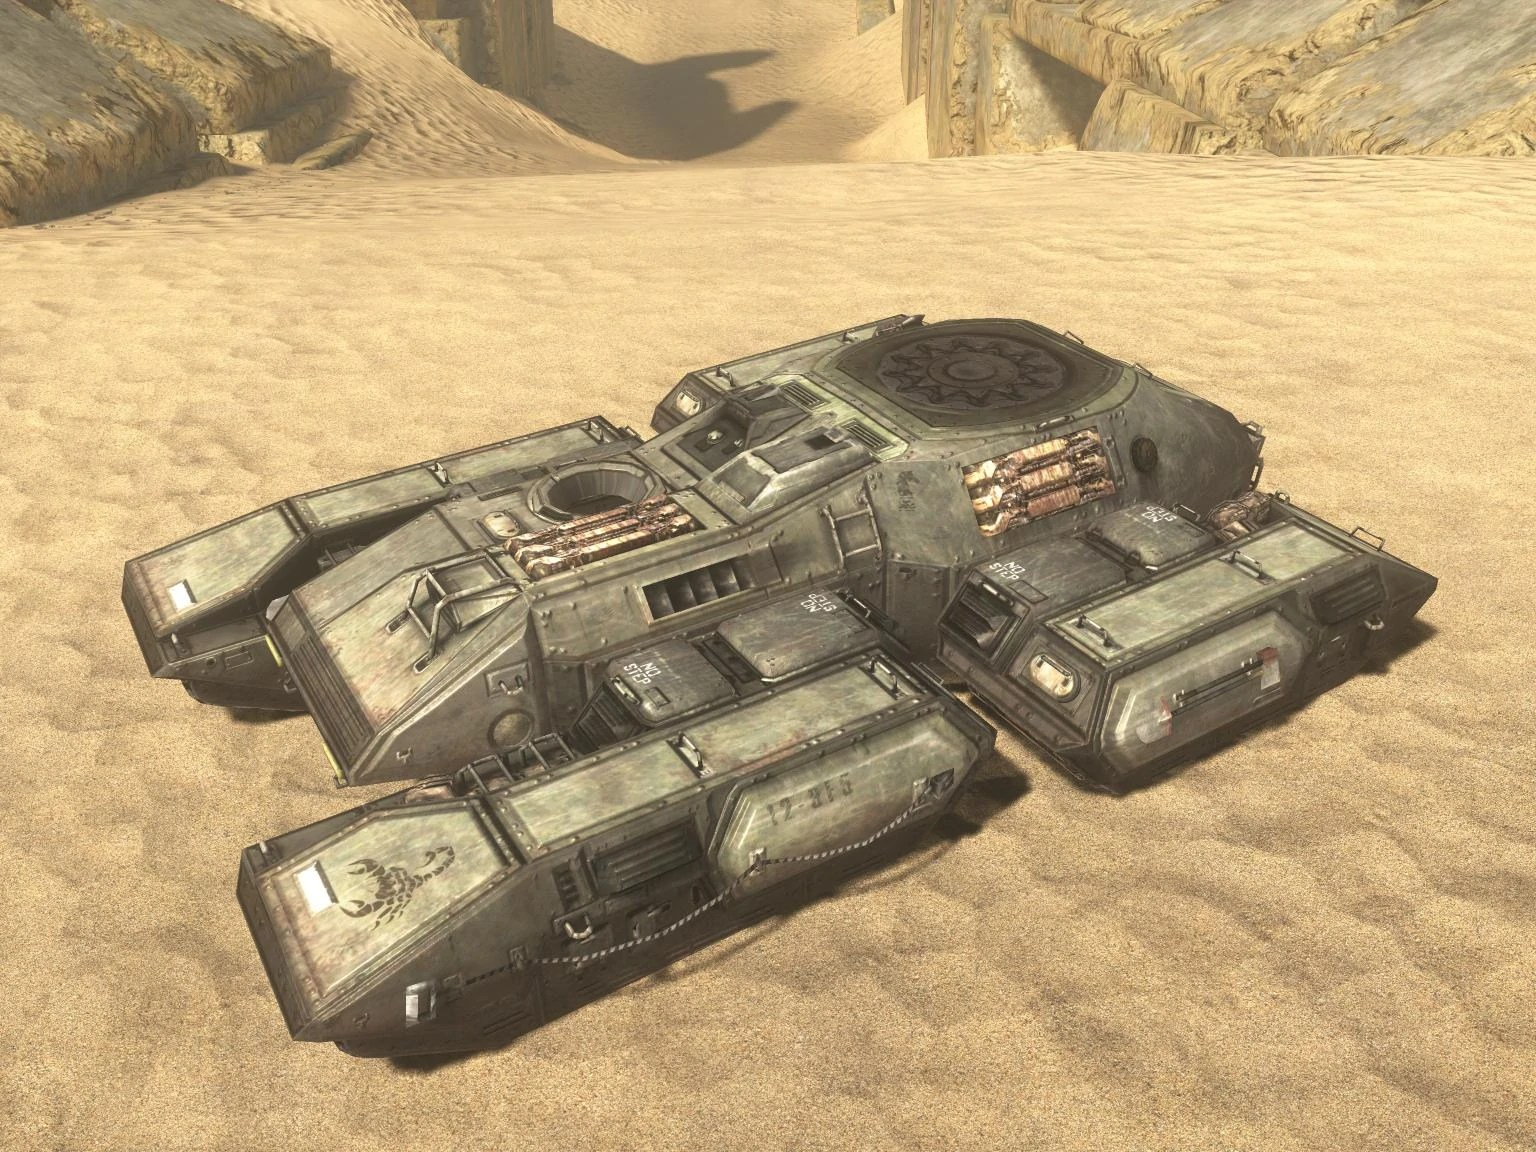 Halo Wallpaper Fall Of Reach Turretless Vehicle Glitch Halo Nation Fandom Powered